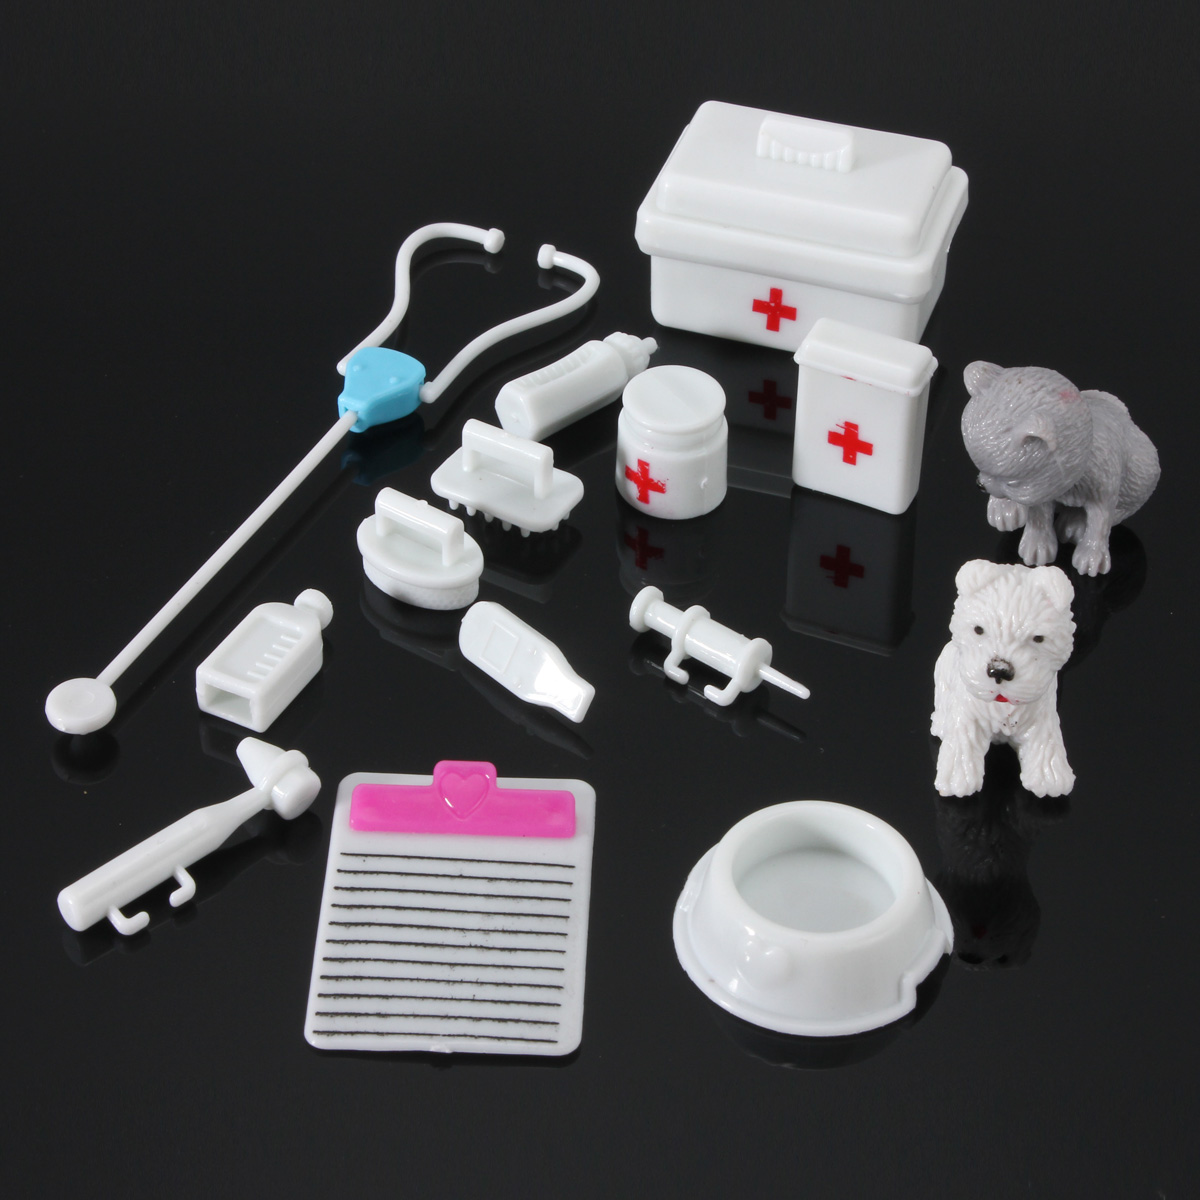 14Pcs Mini Medical Equipment Toys For Barbie Fashion Doll House Accessories Set